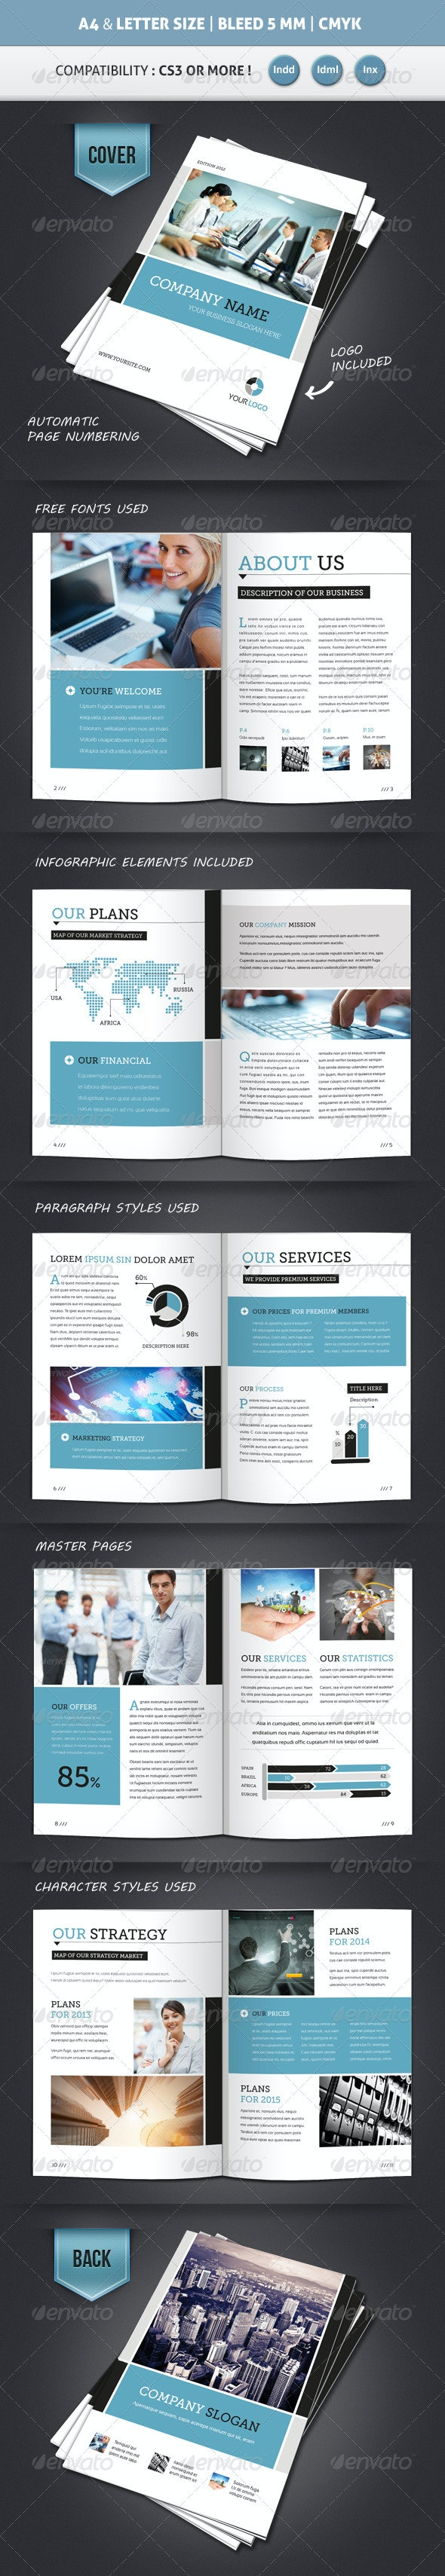 Corporate Brochure Template A4 & Letter 12 Pages - Corporate Brochures